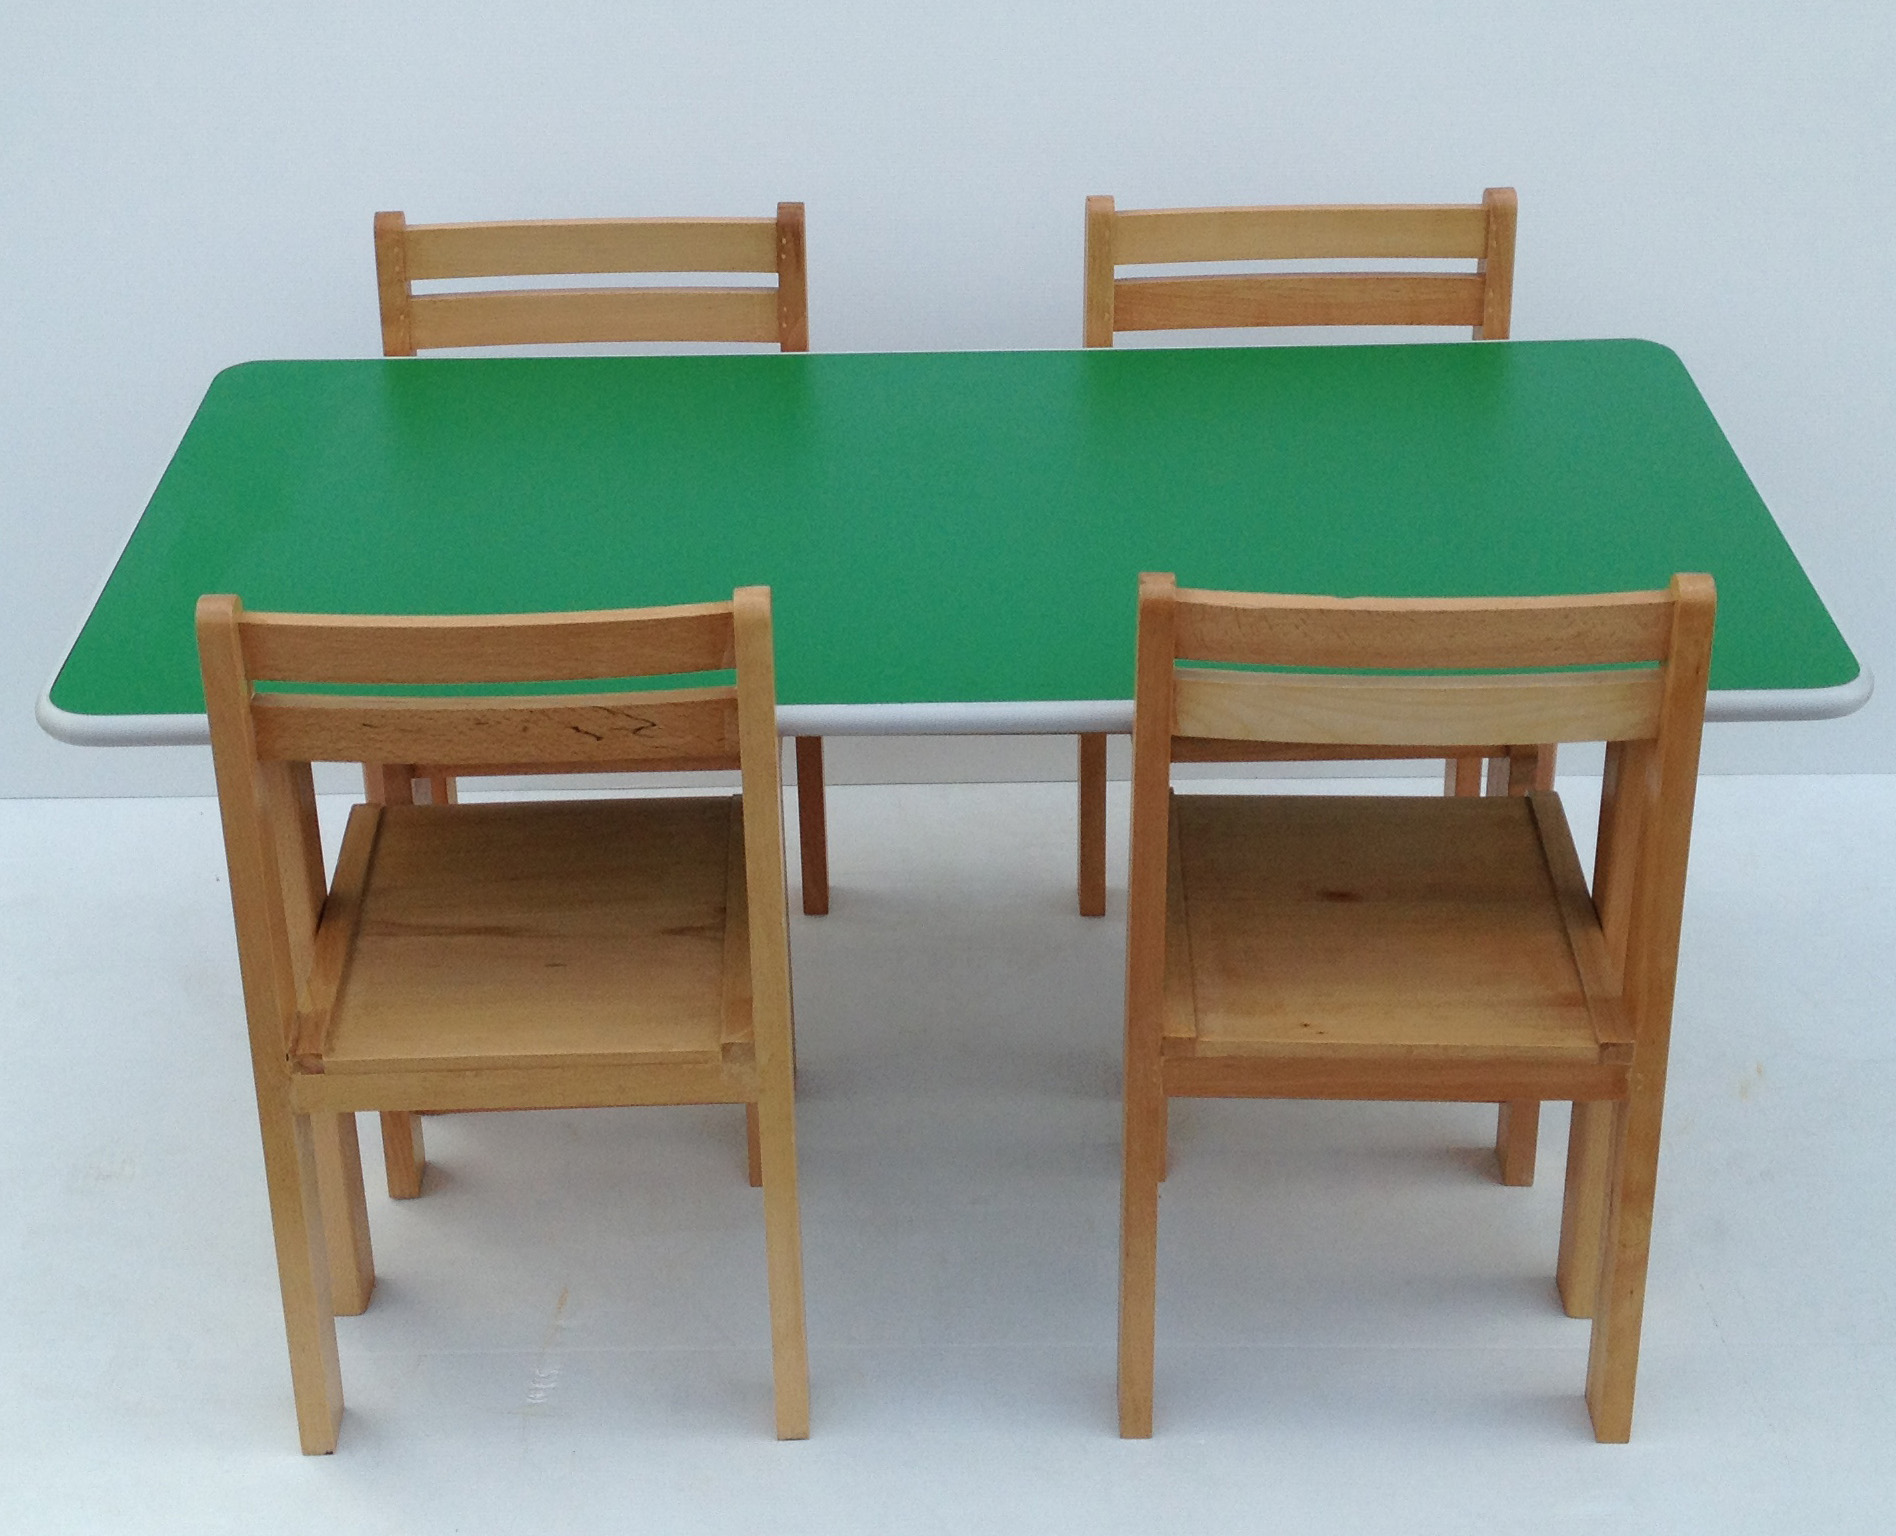 Pre School Kids Table & Chairs Classroom Desk